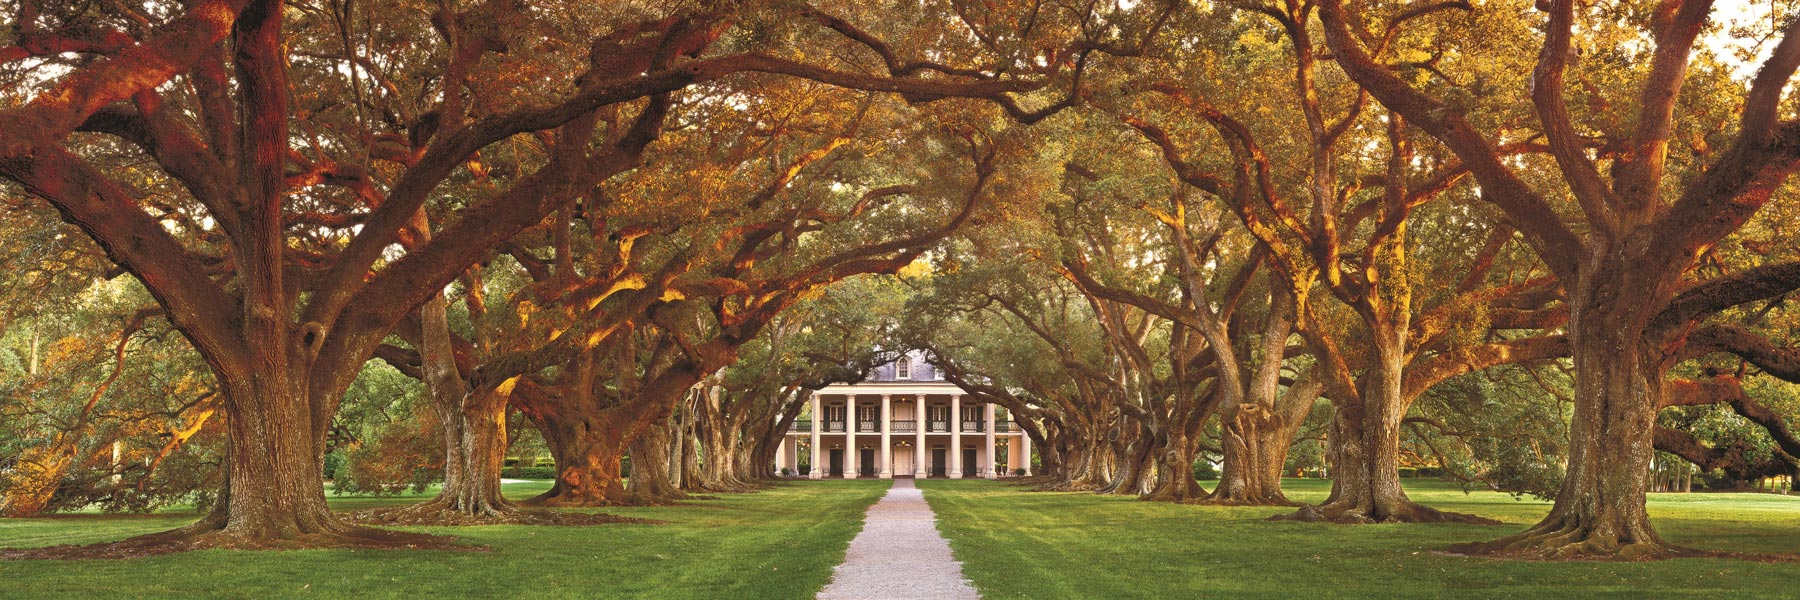 Massive oak trees form a canopy over the driveway leading up to a stately mansioon in Louisiana, USA.